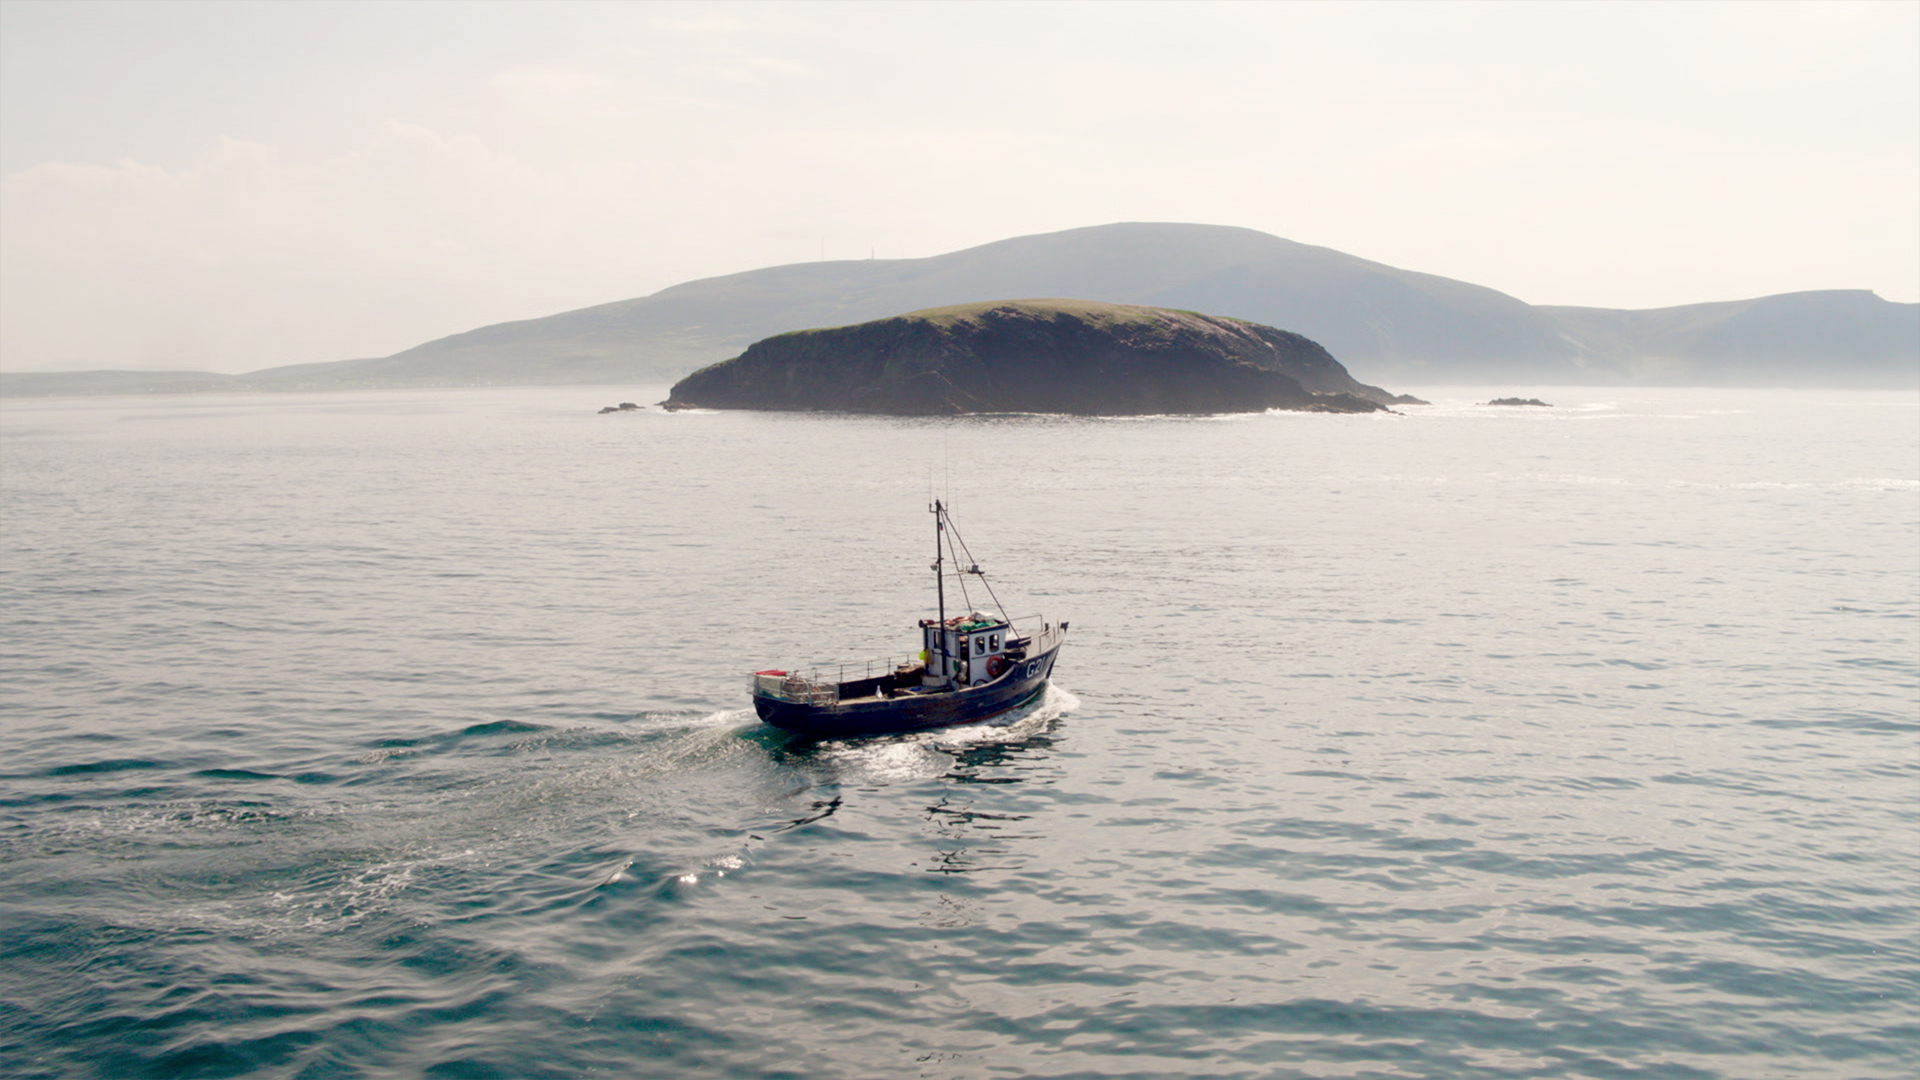 BIM social media campaign, boat at sea, Achill Island